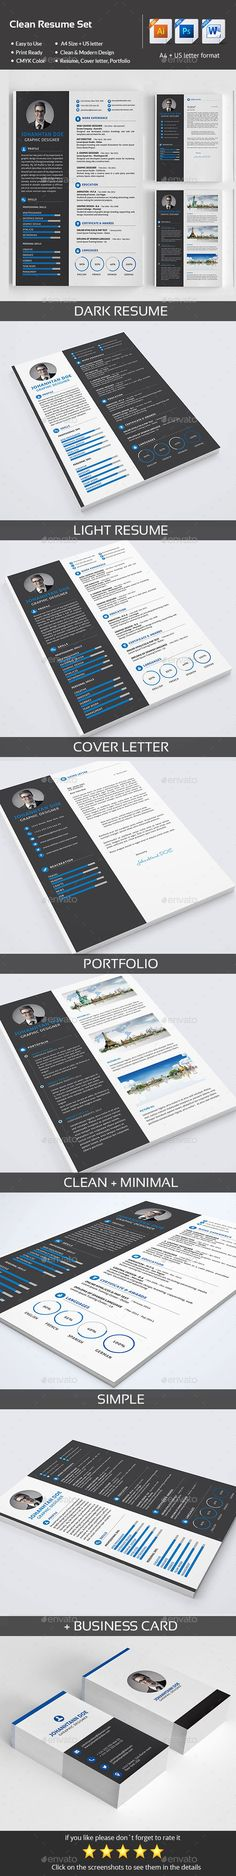 Resume Template. Download: http://graphicriver.net/item/resume/11210560?ref=ksioks